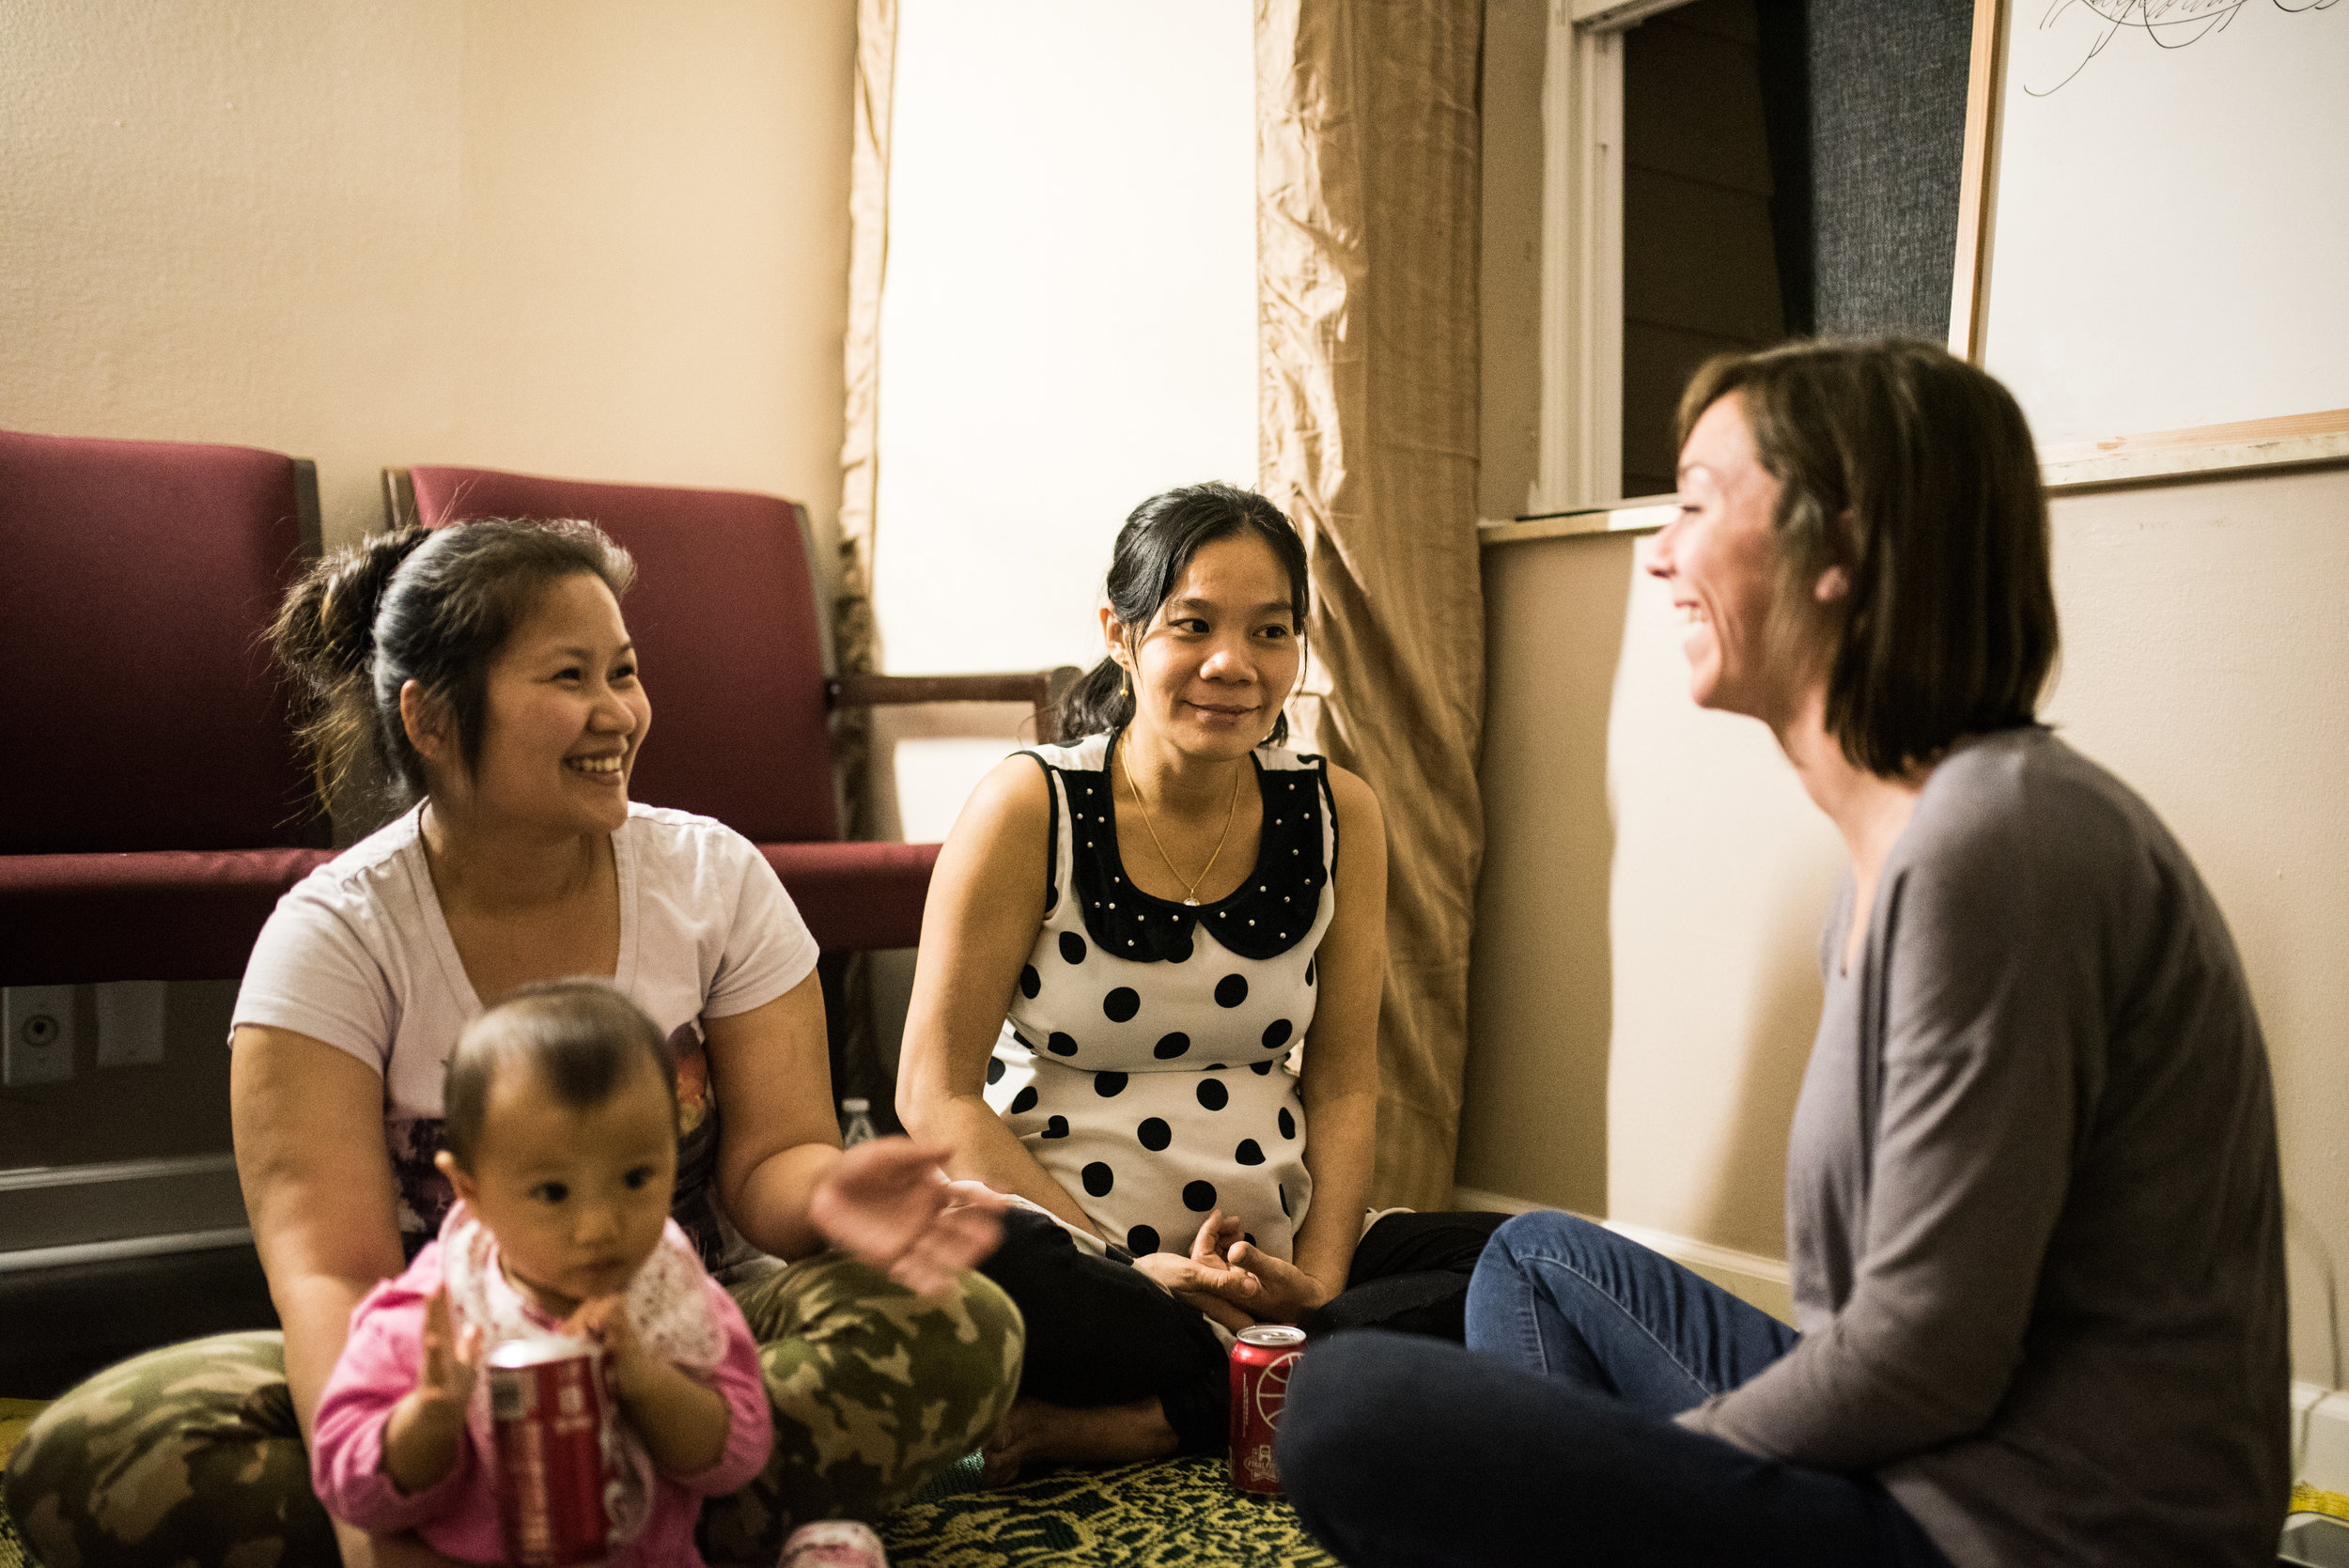 Internship ignited a desire to service in Leah that continues to bear fruit.She now serves as a doula and has offered her services free of charge to refugees. Pictured above, she assists during a bible study offered to Burmese refugees.